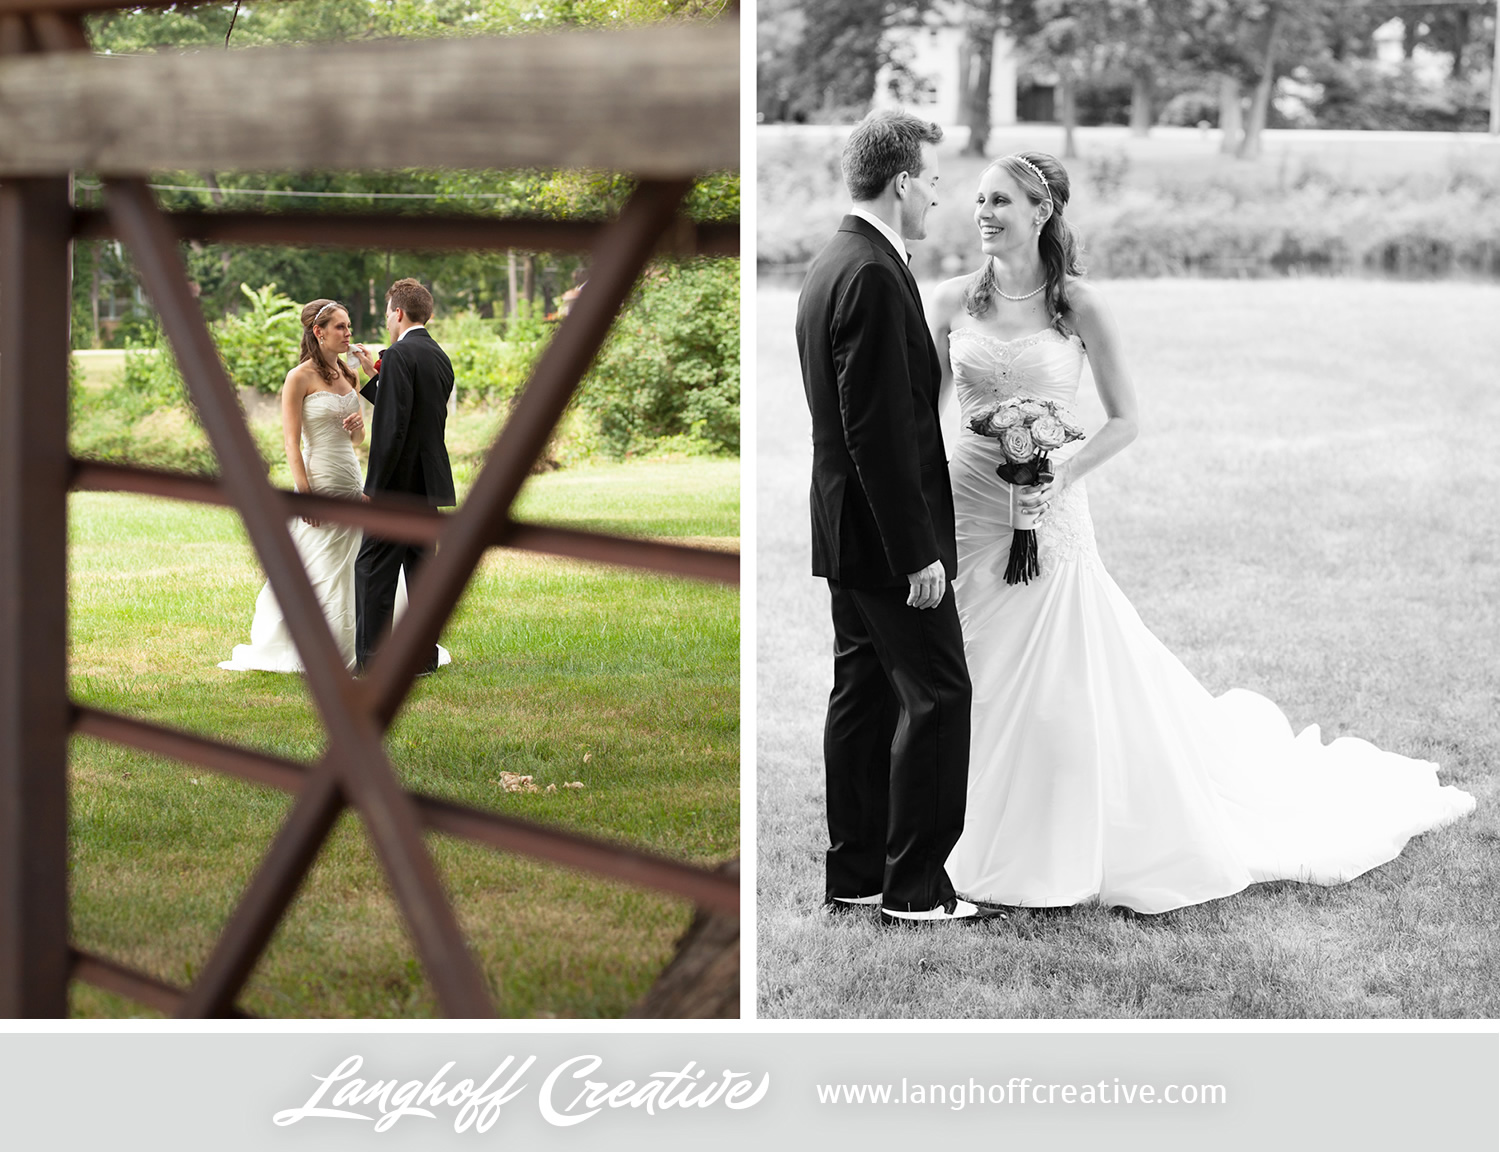 PlainfieldWedding-2013-LanghoffCreative-MattErin-8-photo.jpg